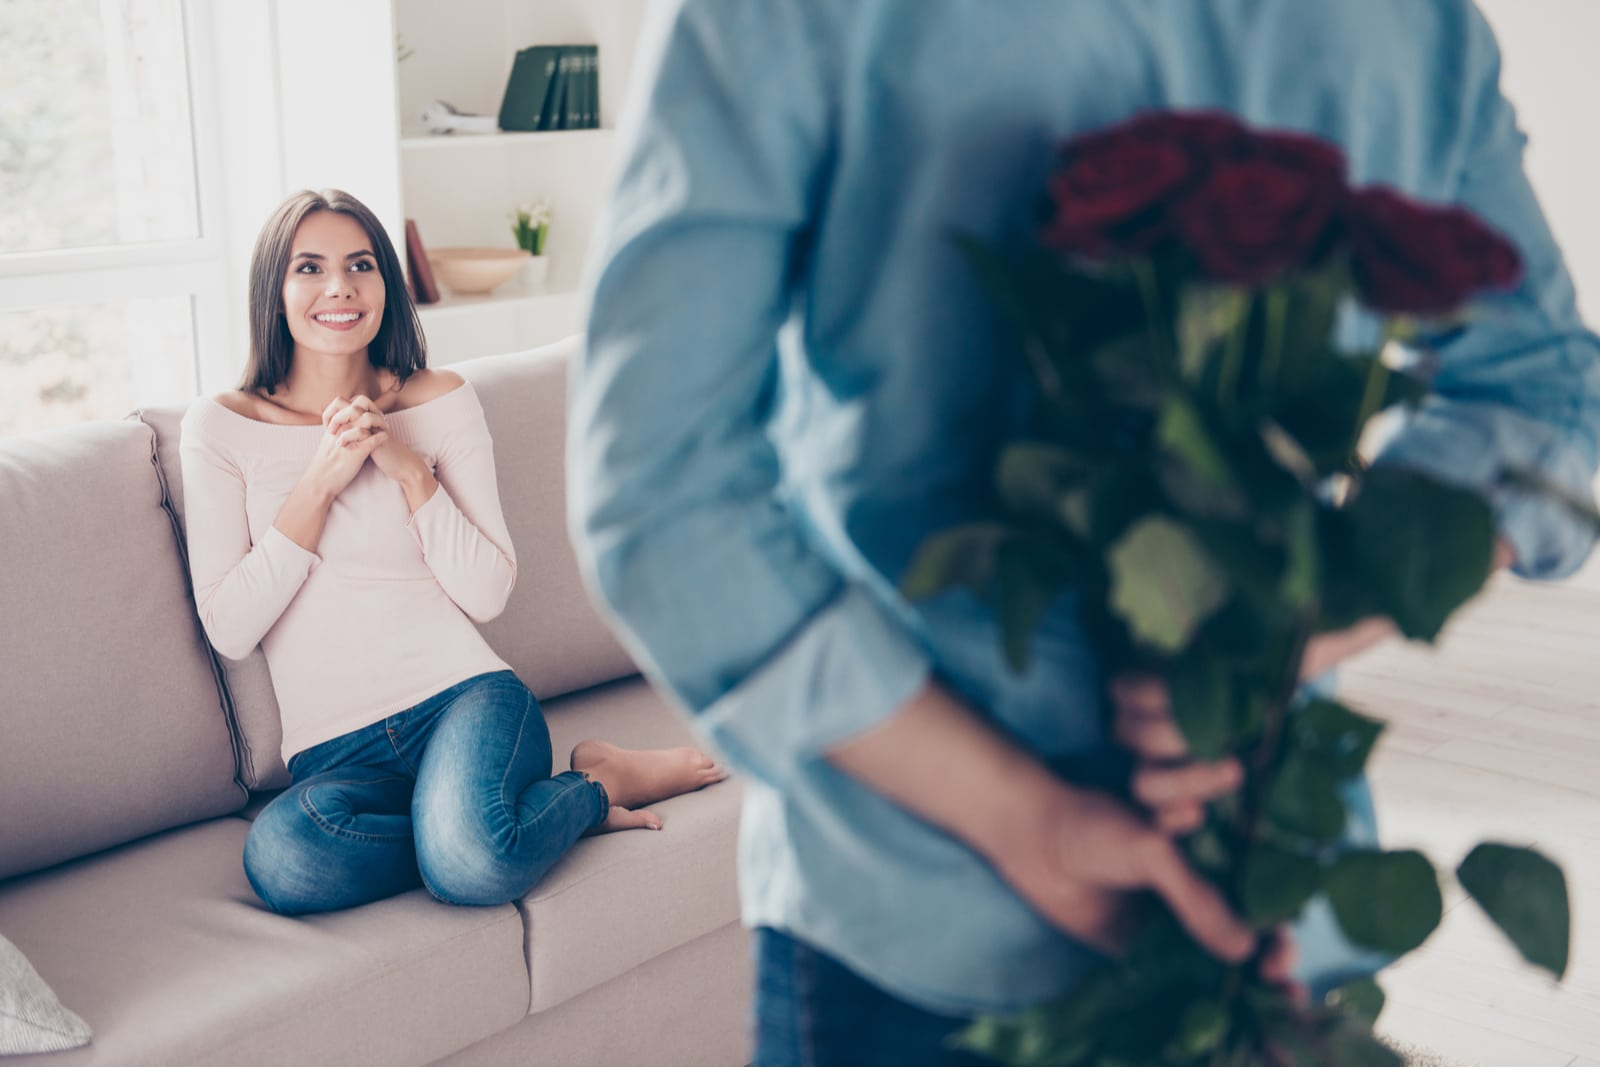 a man bought a bouquet of roses to surprise a woman